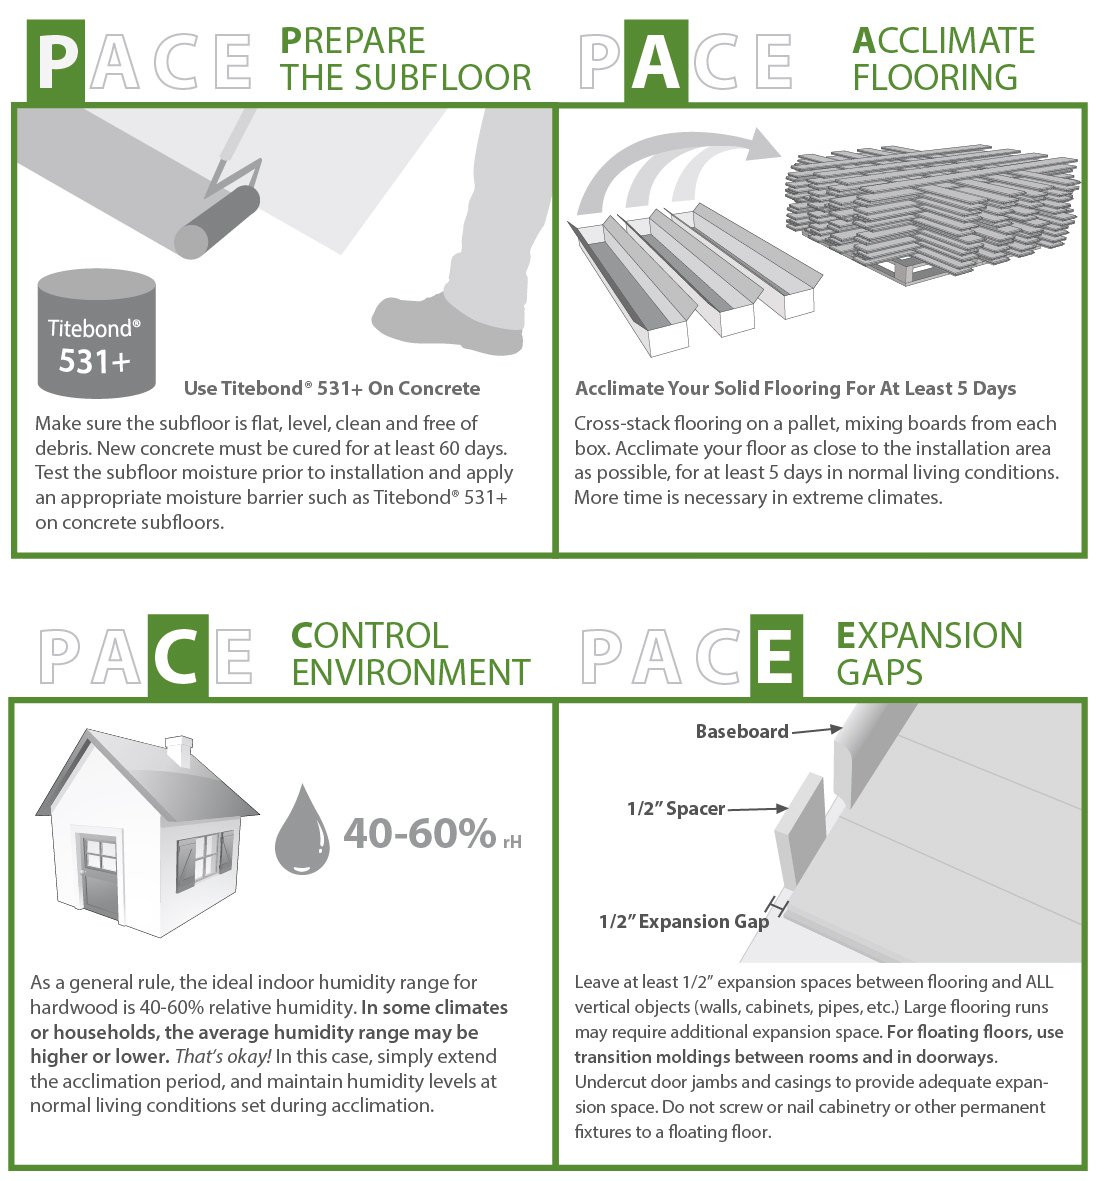 how to glue down hardwood floor to concrete of nail down solid flooring regarding try watching this video on www youtube com or enable javascript if it is disabled in your browser